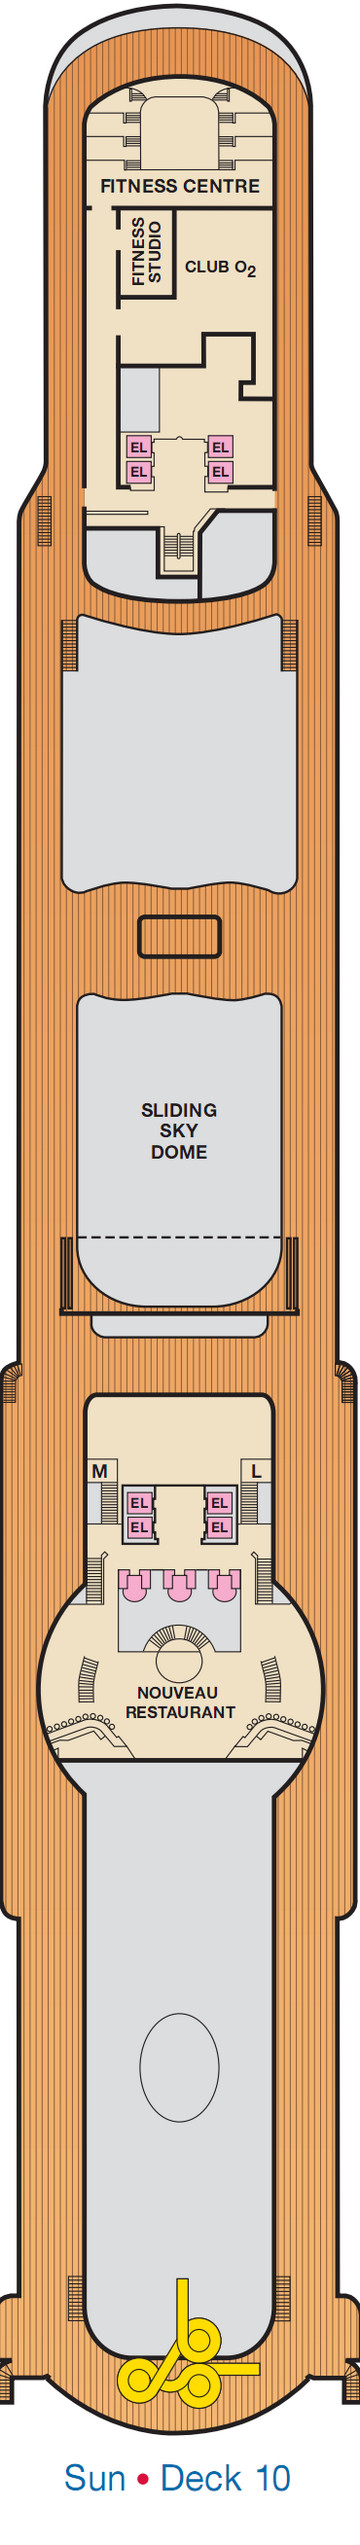 Carnival Legend Sun Deck 10 layout